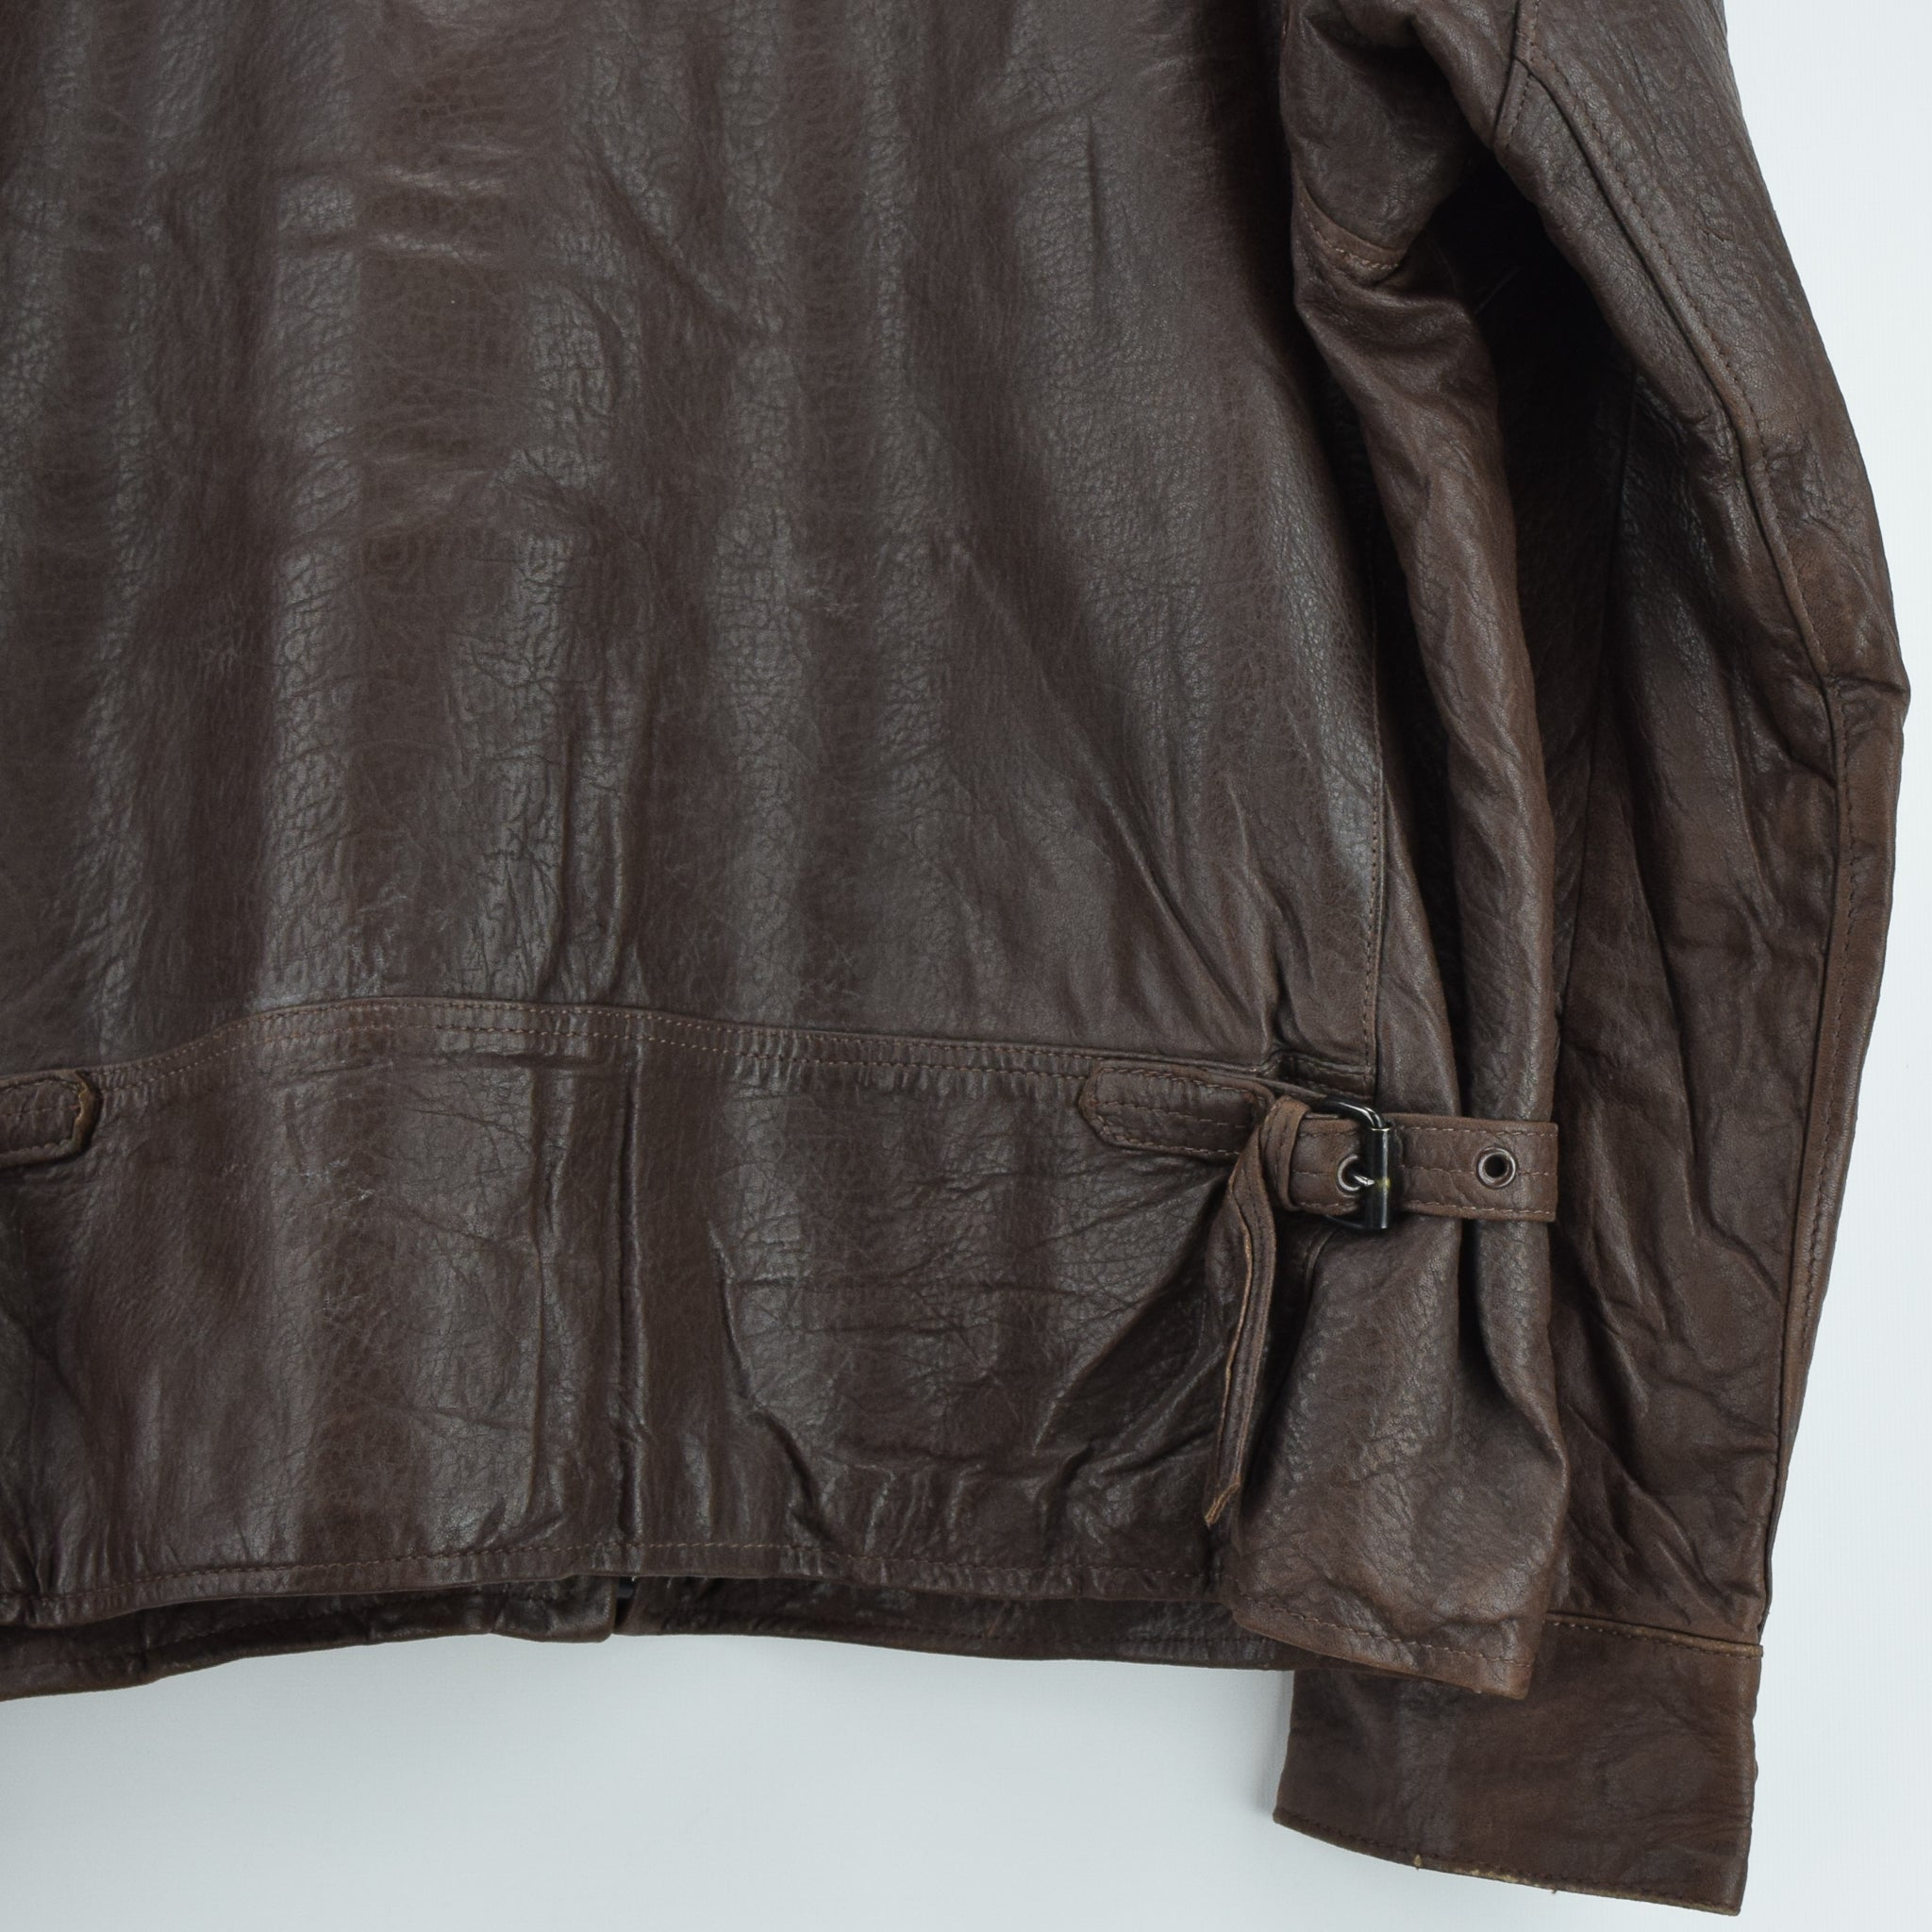 Vintage Banana Republic Brown Leather Bomber Biker Style Jacket Made in USA L back hem